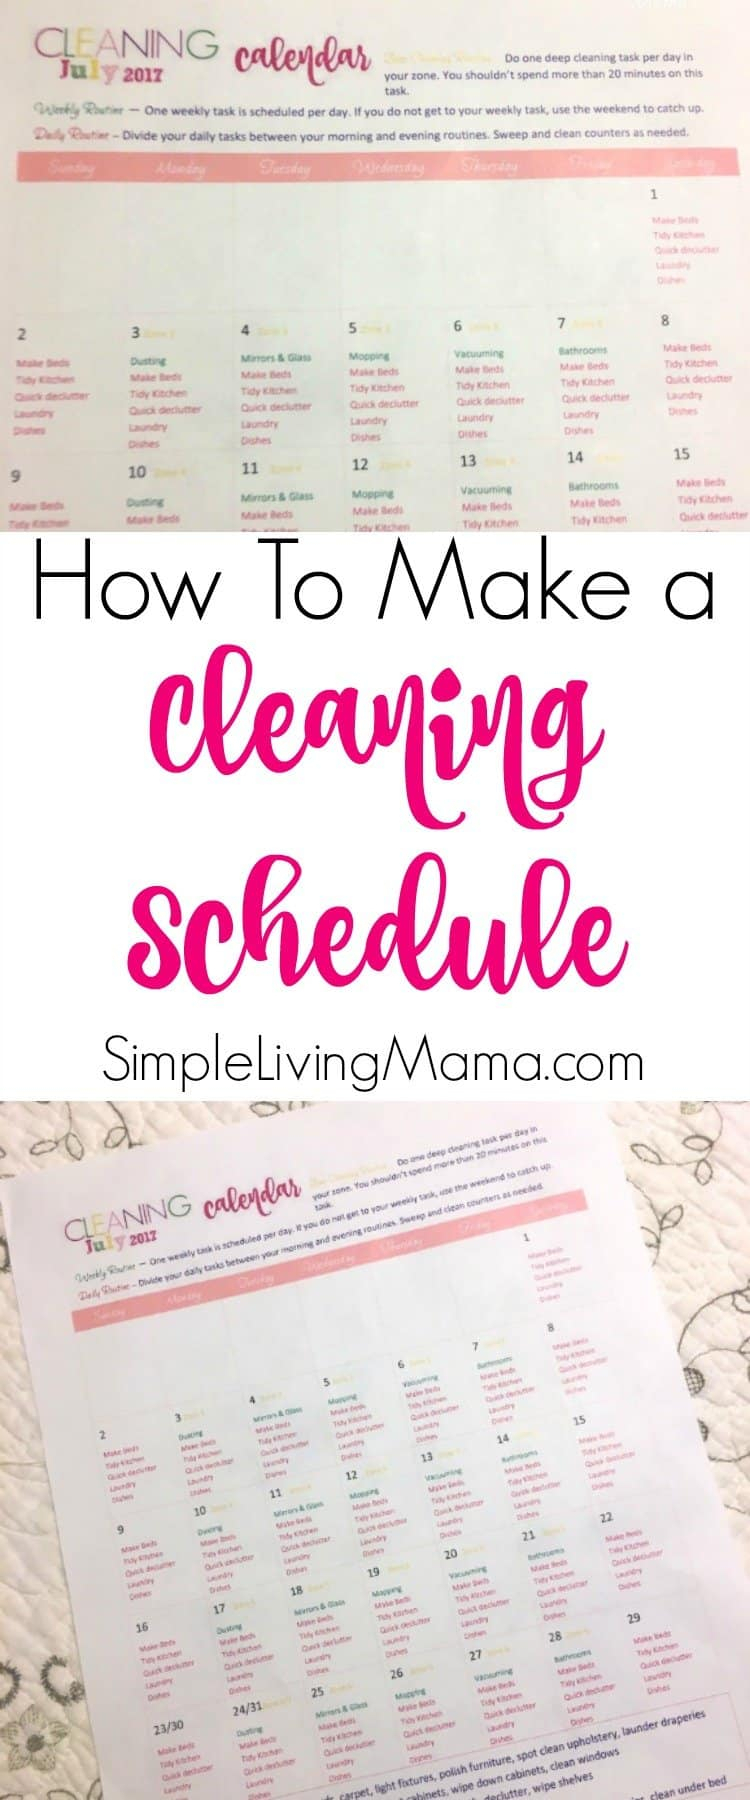 How To Make A Cleaning Schedule Even If You Have Little